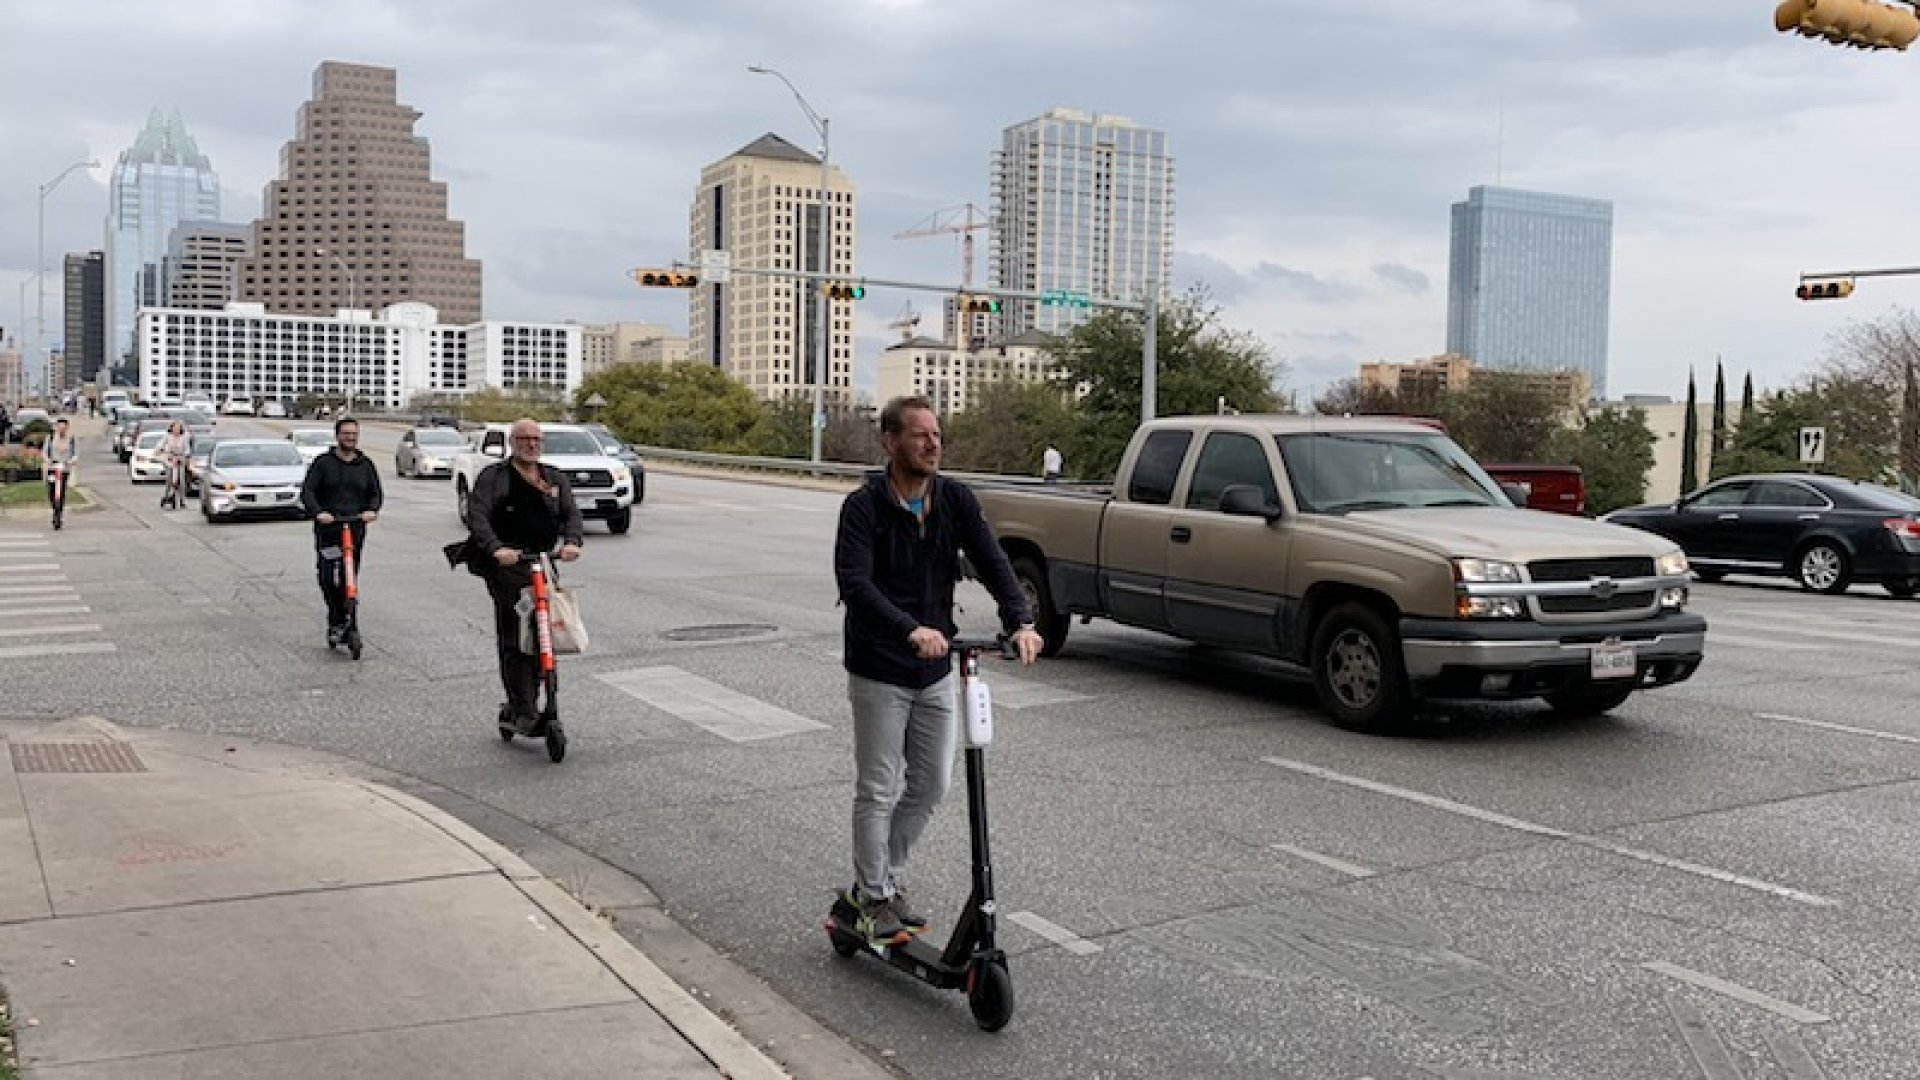 SXSW festival goers riding electric rental scooters between events. Not pictured: helmets.